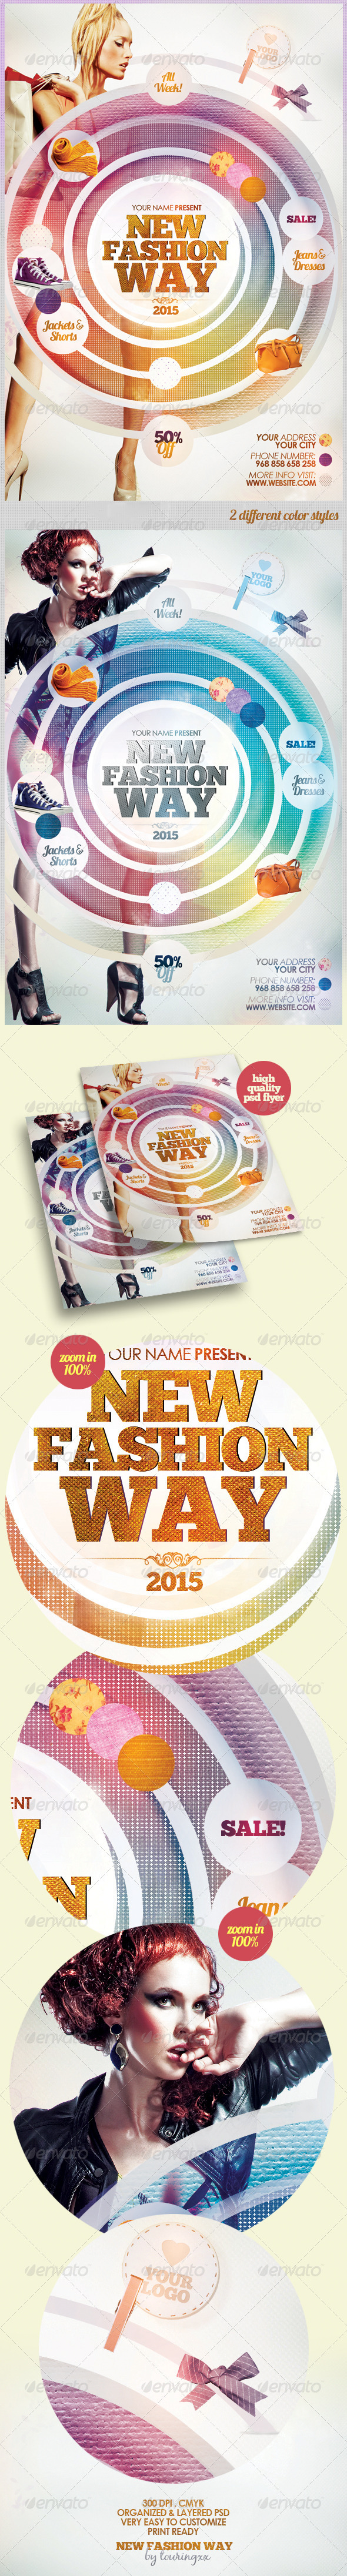 New Fashion Way Flyer Template - Miscellaneous Events